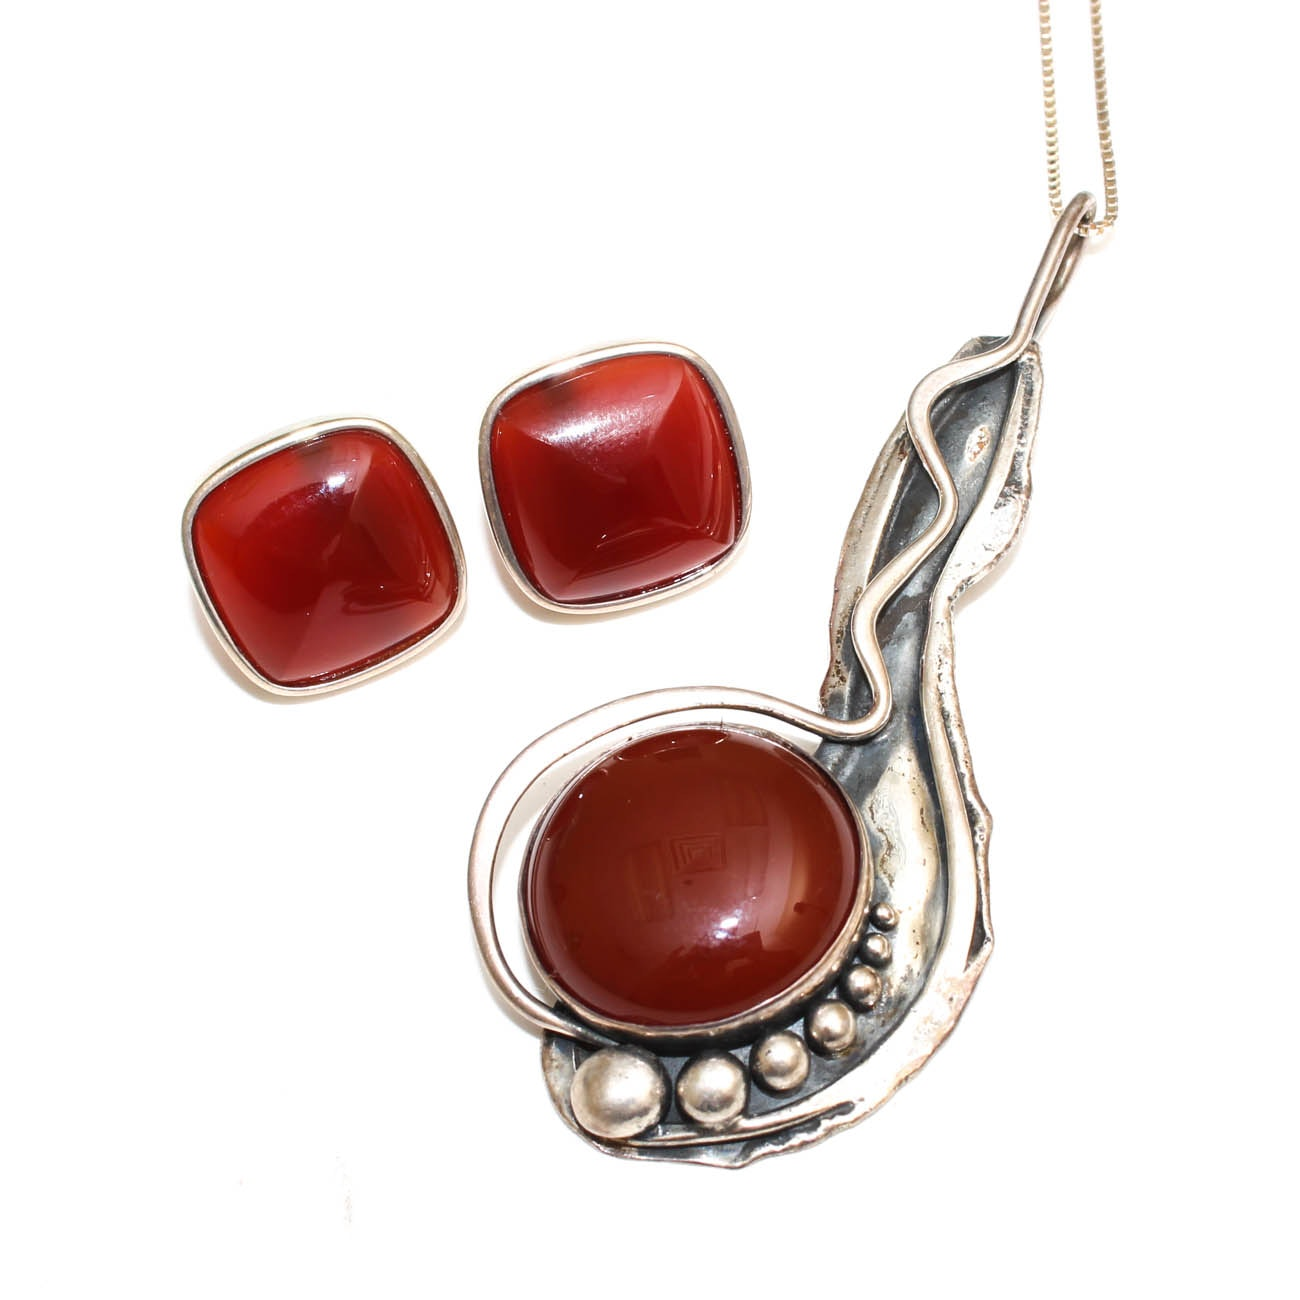 Sterling Silver and Carnelian Modernist Pendant Necklace and Earrings